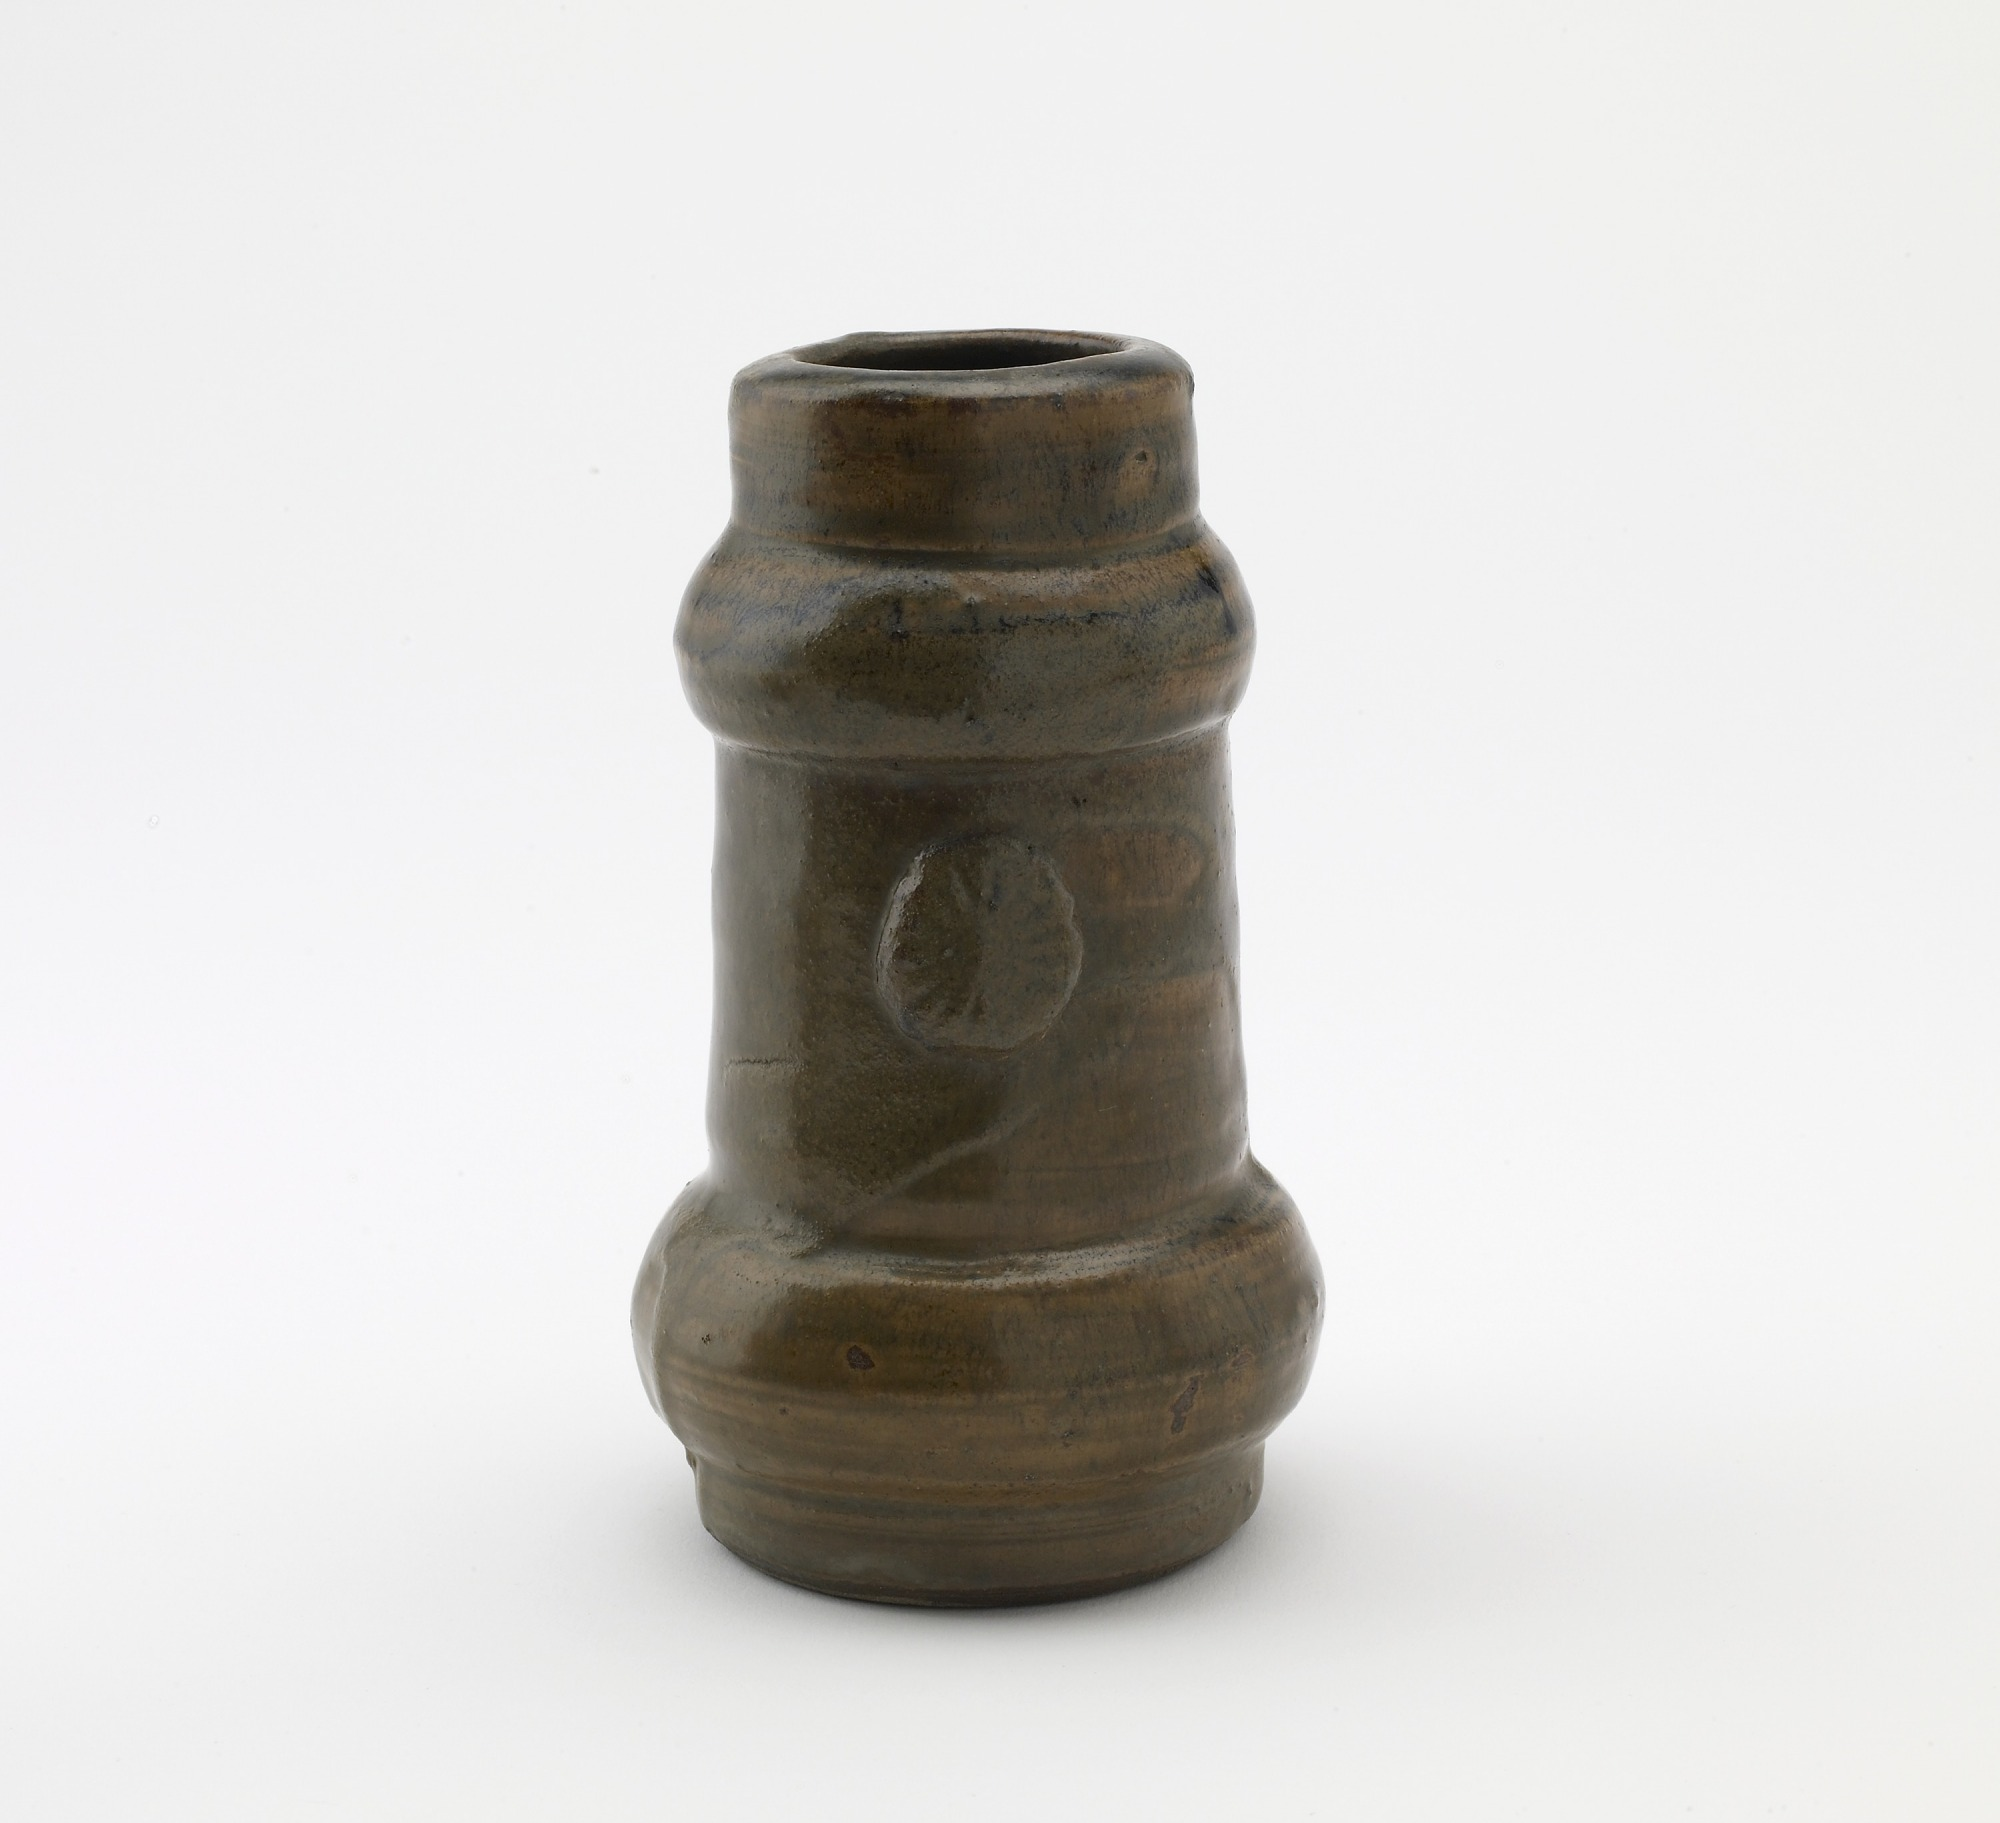 Tanoue ware vase for Buddhist altar or grave